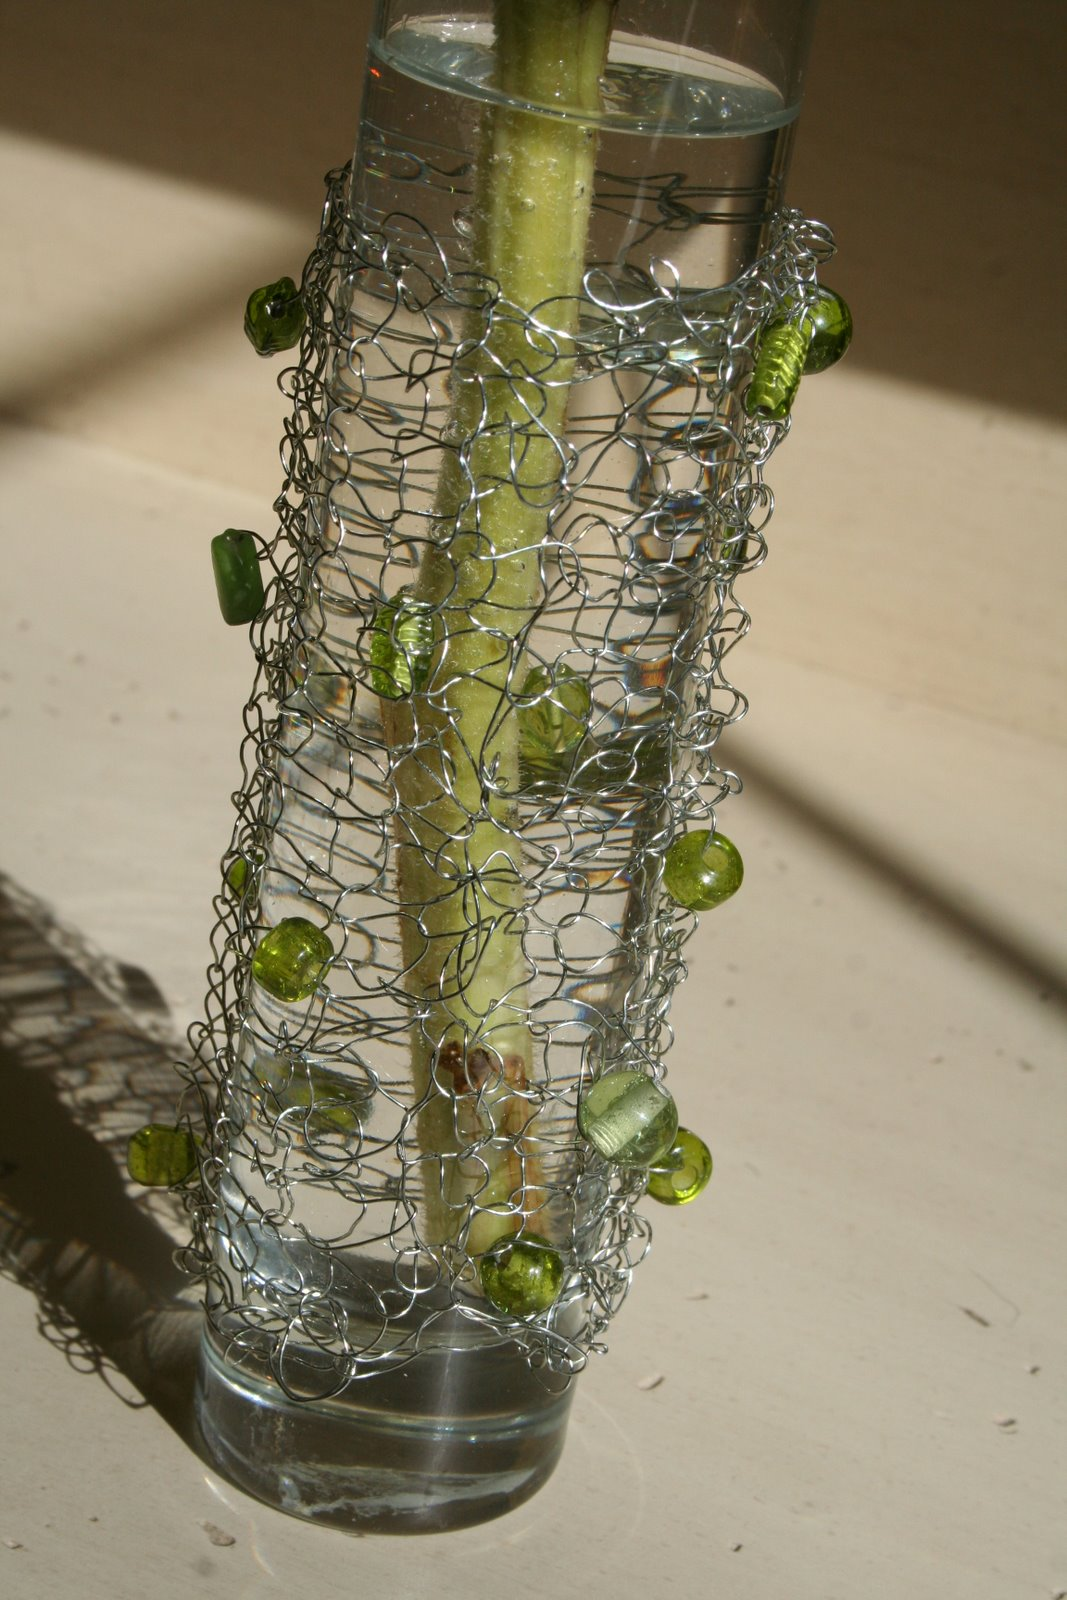 Knitting With Wire And Beads : Knitting with wire a knit vase dukes and duchesses